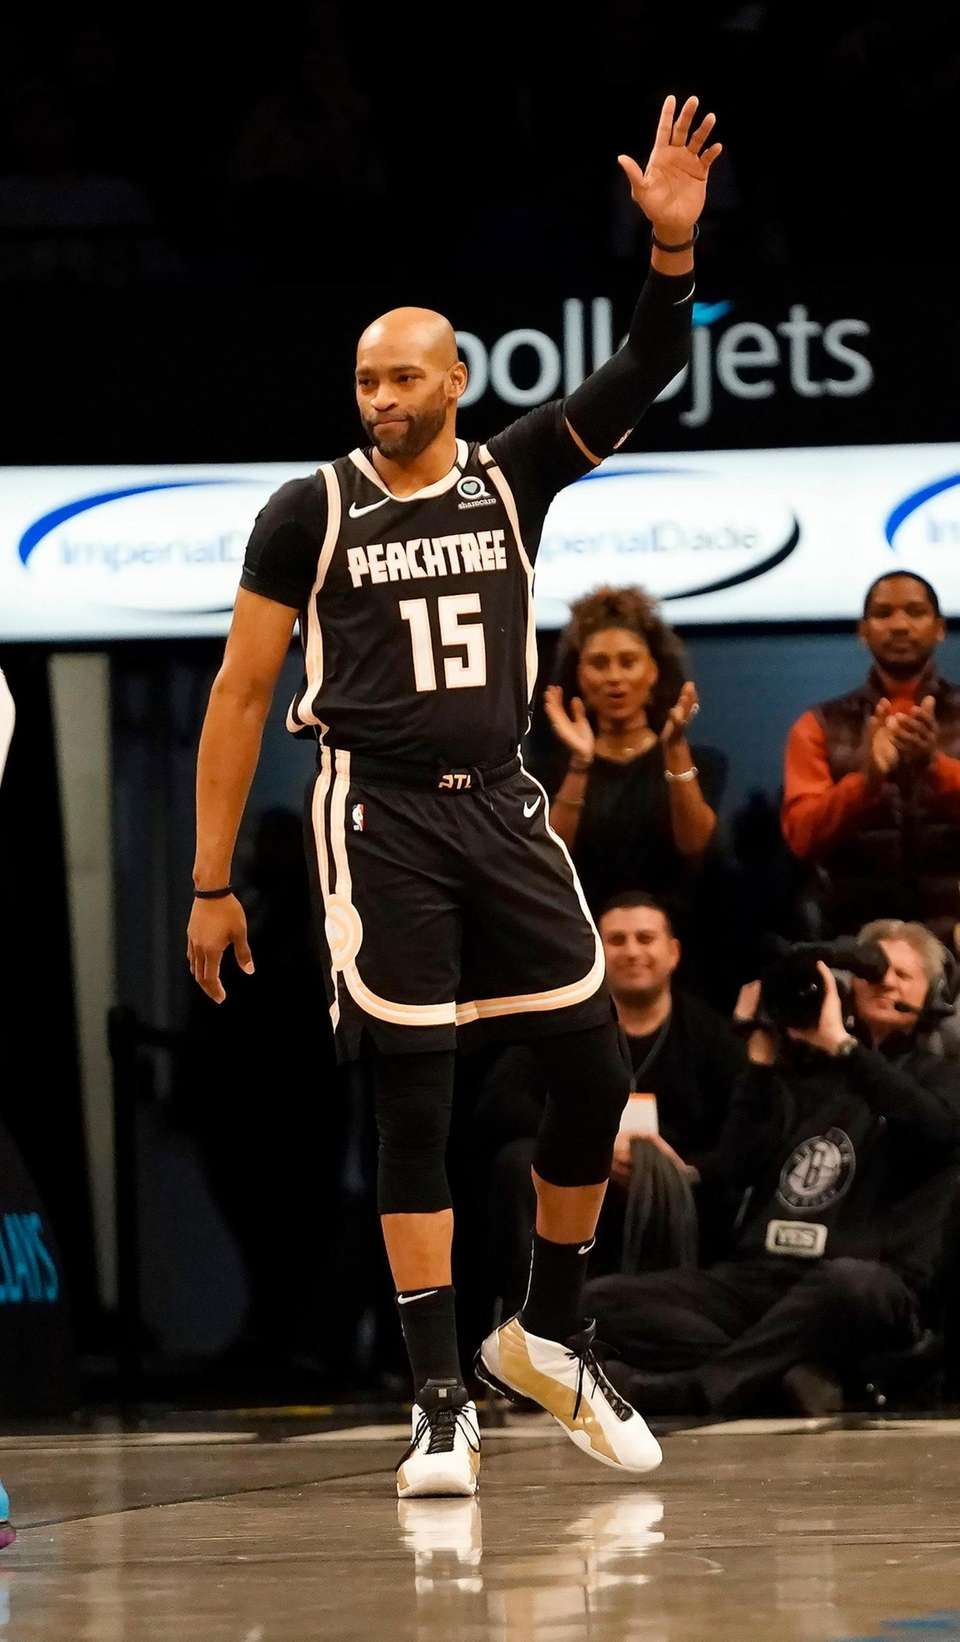 Atlanta Hawks guard Vince Carter (15) acknowledge the